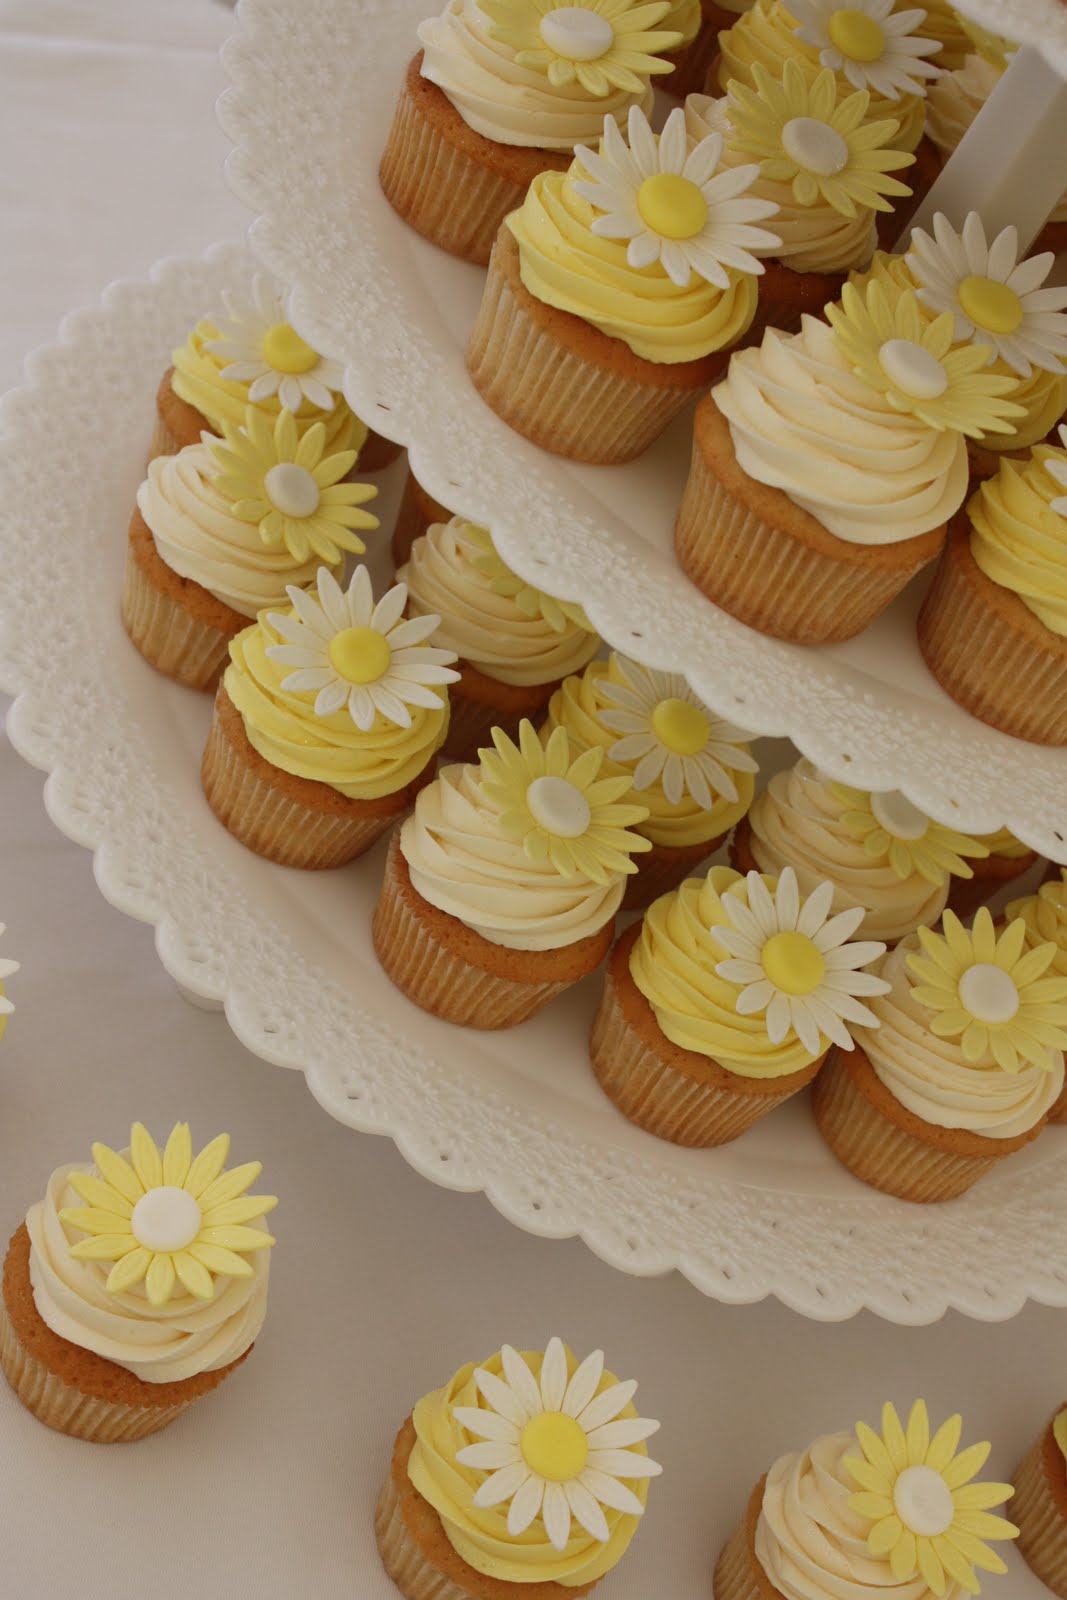 The Little House of Cupcakes April 2011